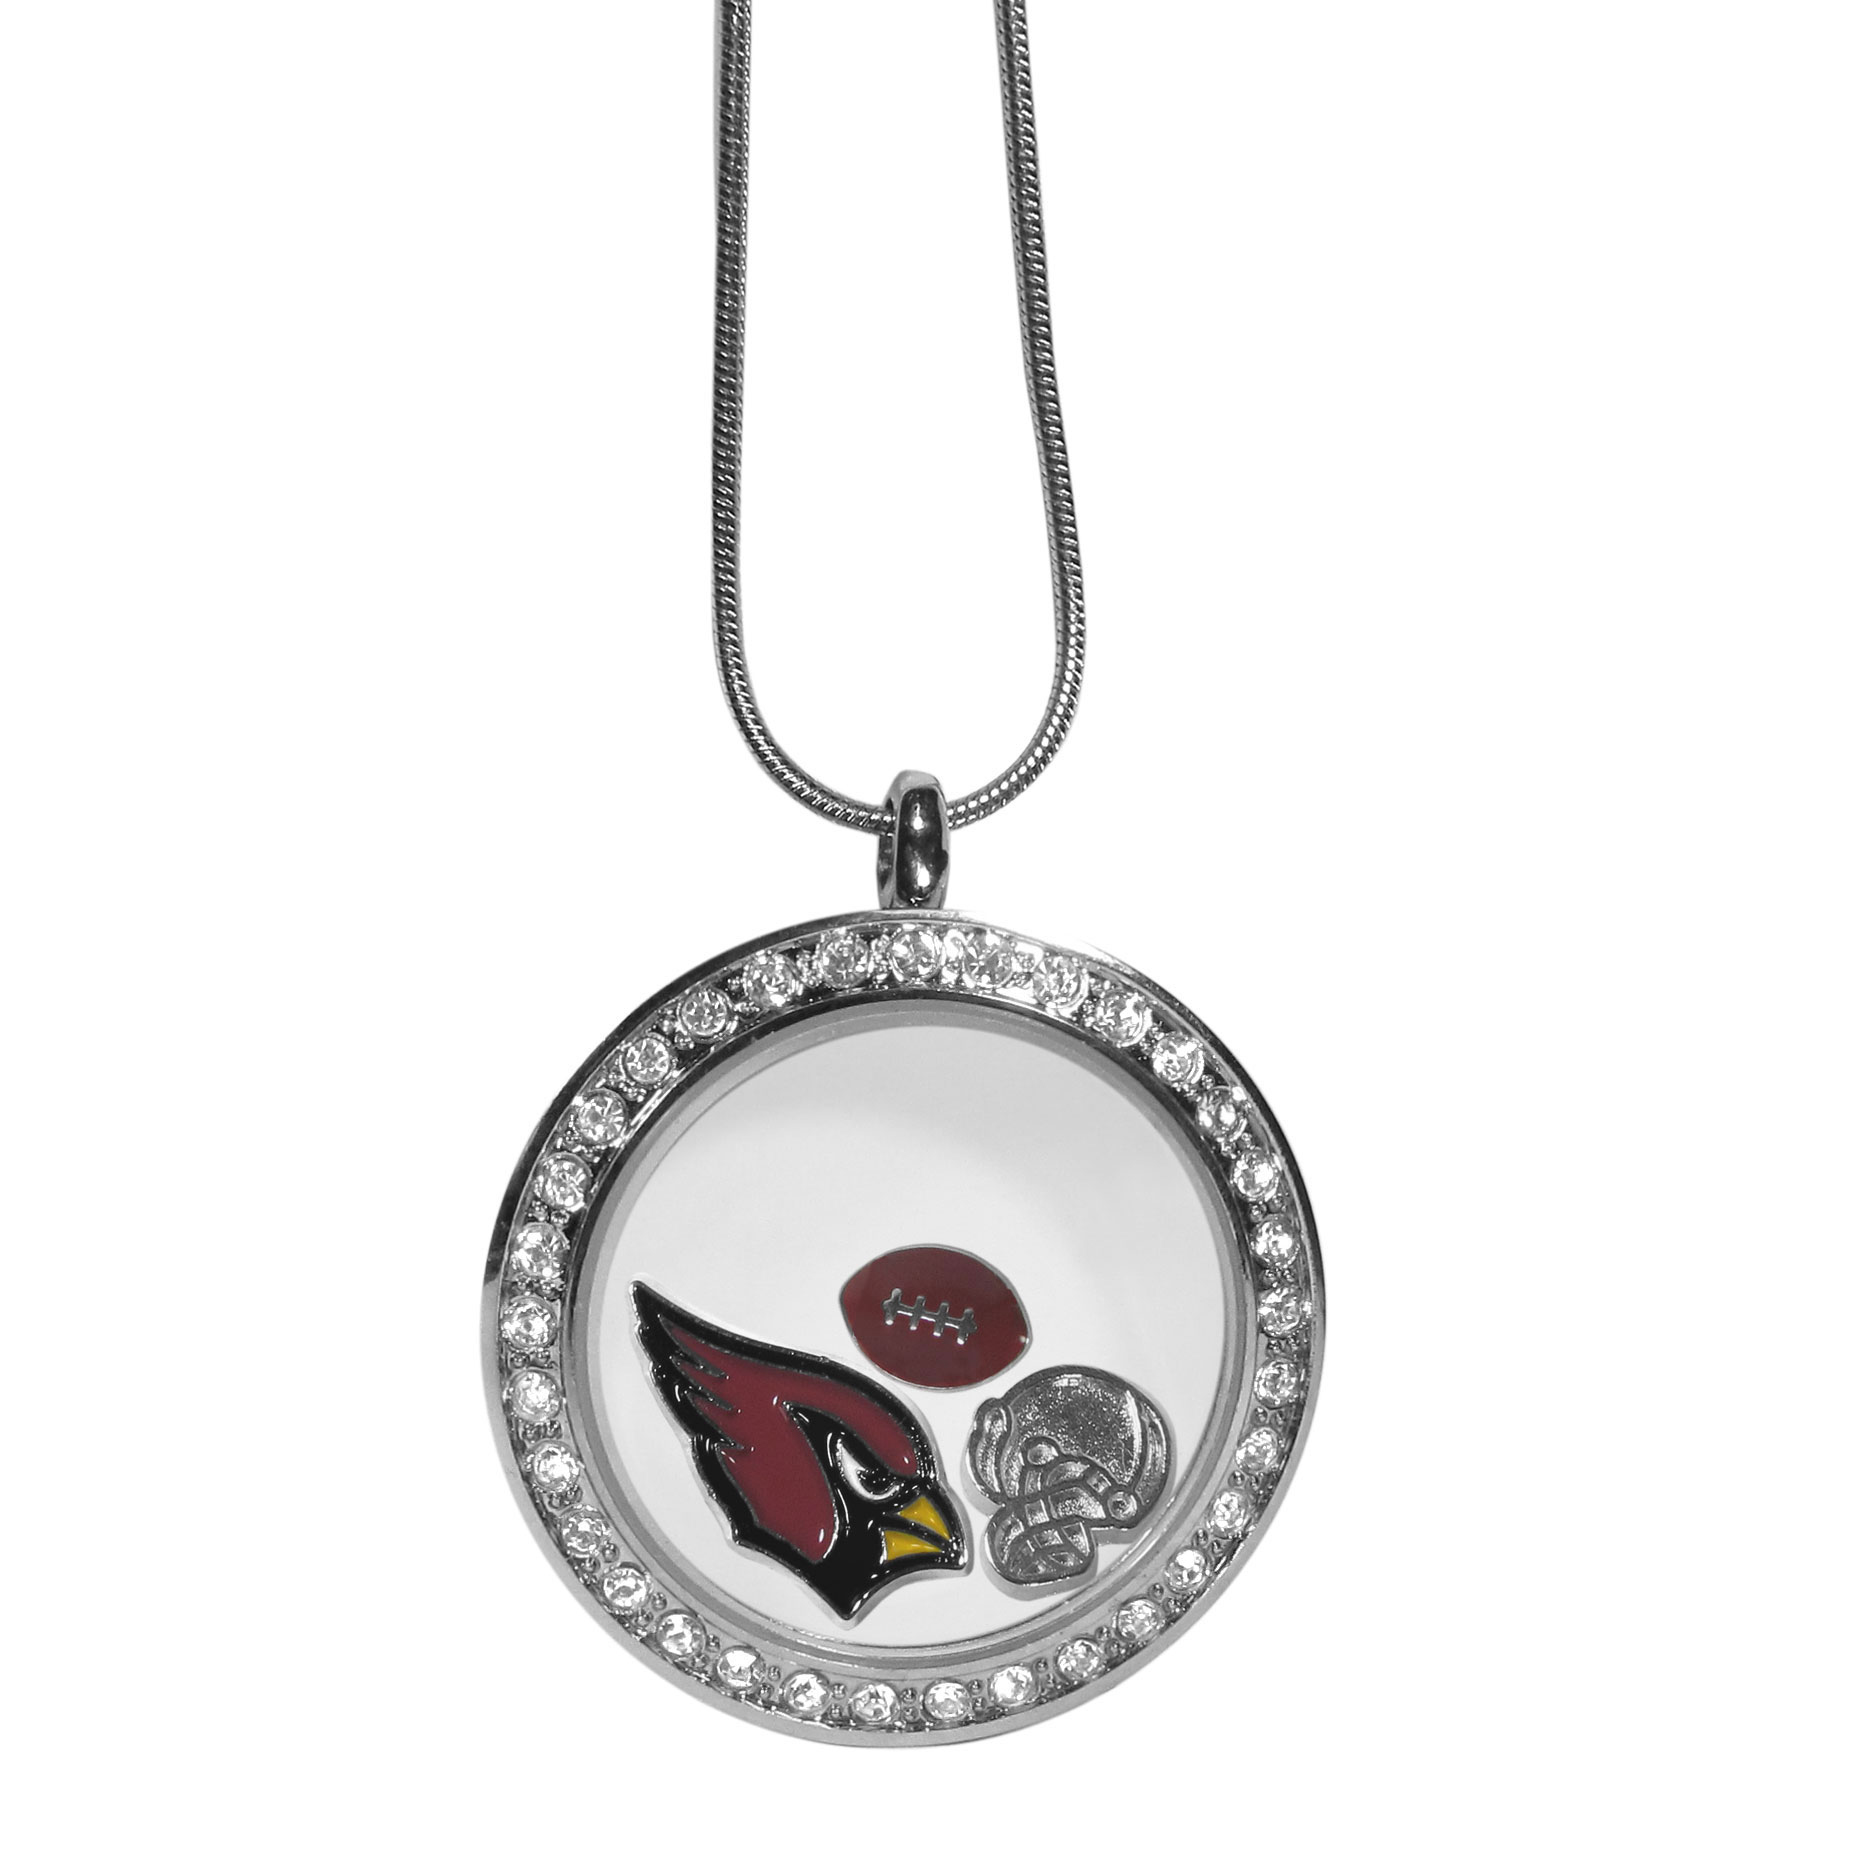 Arizona Cardinals Locket Necklace - We have taken the classic floating charm locket and combined with licensed sports charms to create a must have fan necklace. The necklace comes with 3 charms; 1 Arizona Cardinals charm, one football charm and one helmet charm. The charms float in a beautiful locket that has a strong magnetic closure with a rhinestone border. The locket comes on an 18 inch snake chain with 2 inch extender.